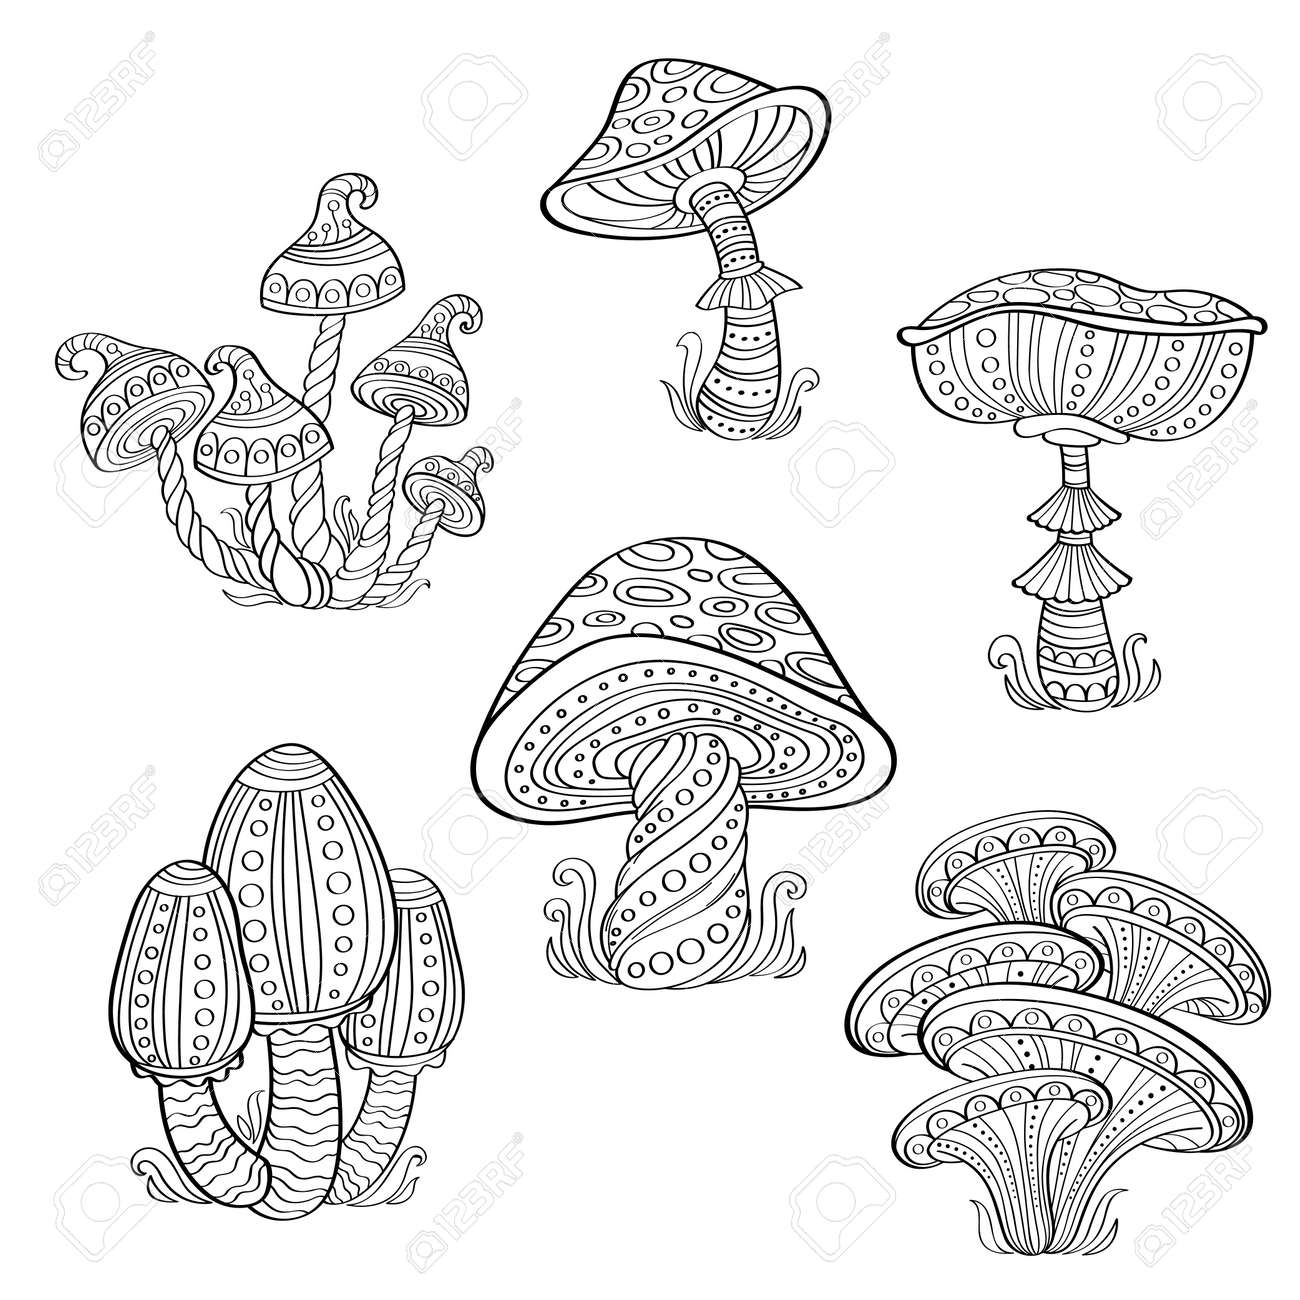 Set Of Stylized Ornamental Mushrooms Line Art Collection Tattoo Royalty Free Cliparts Vectors And Stock Illustration Image 81806853